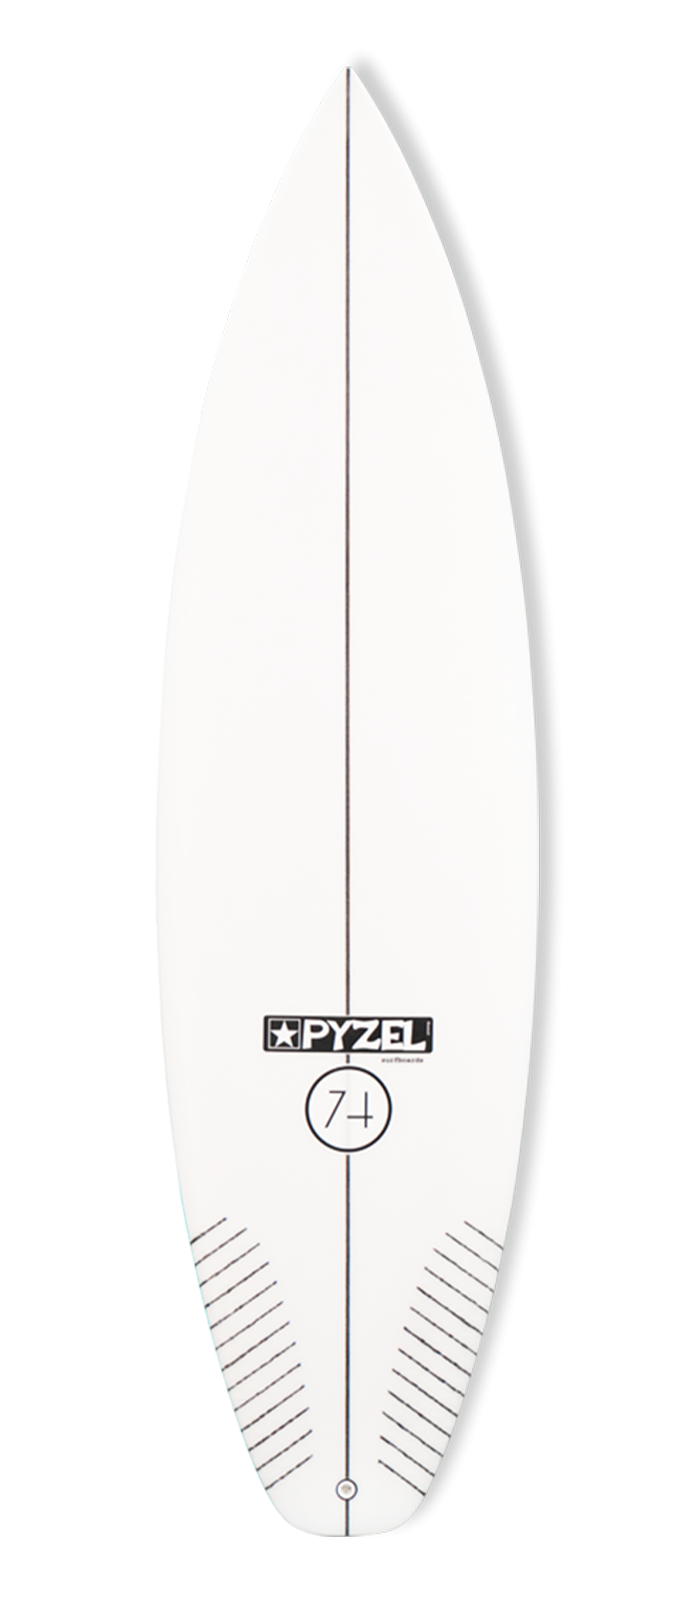 74 surfboard model deck